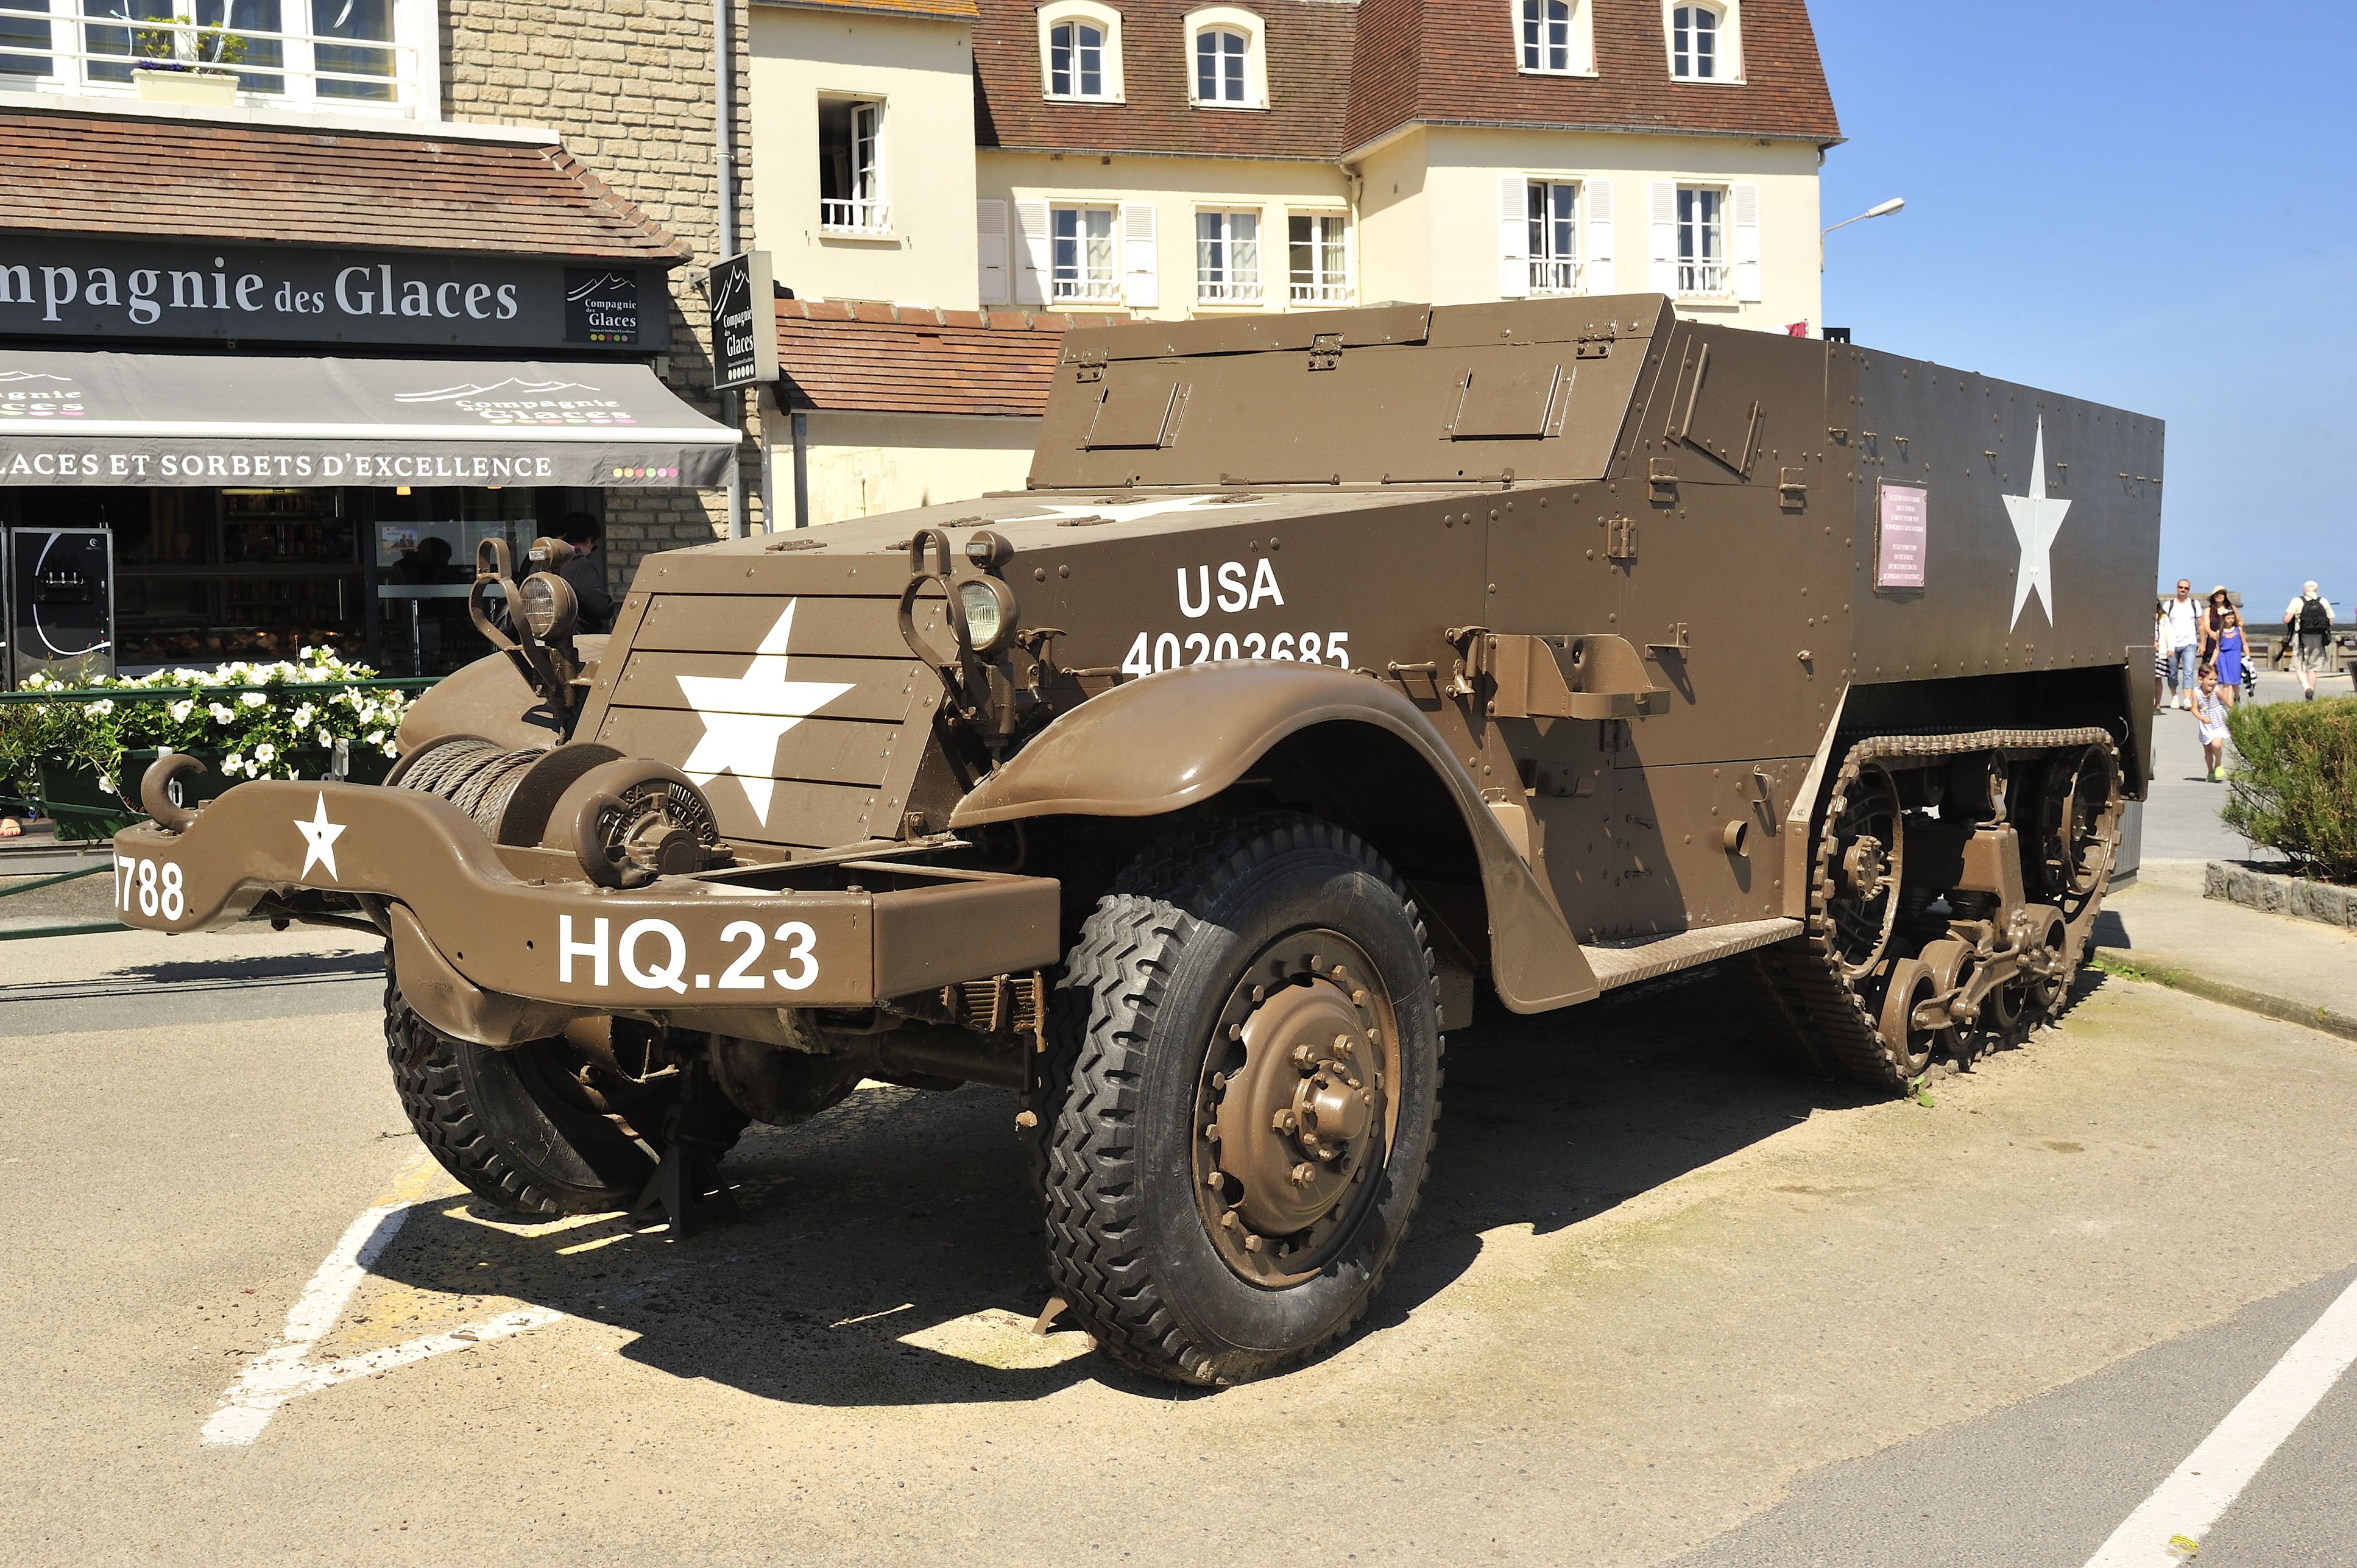 American armored vehicle remaining from 1944 Normandy Invasion, Arromanches-les-Bains, Calvados Department, Normandy, France